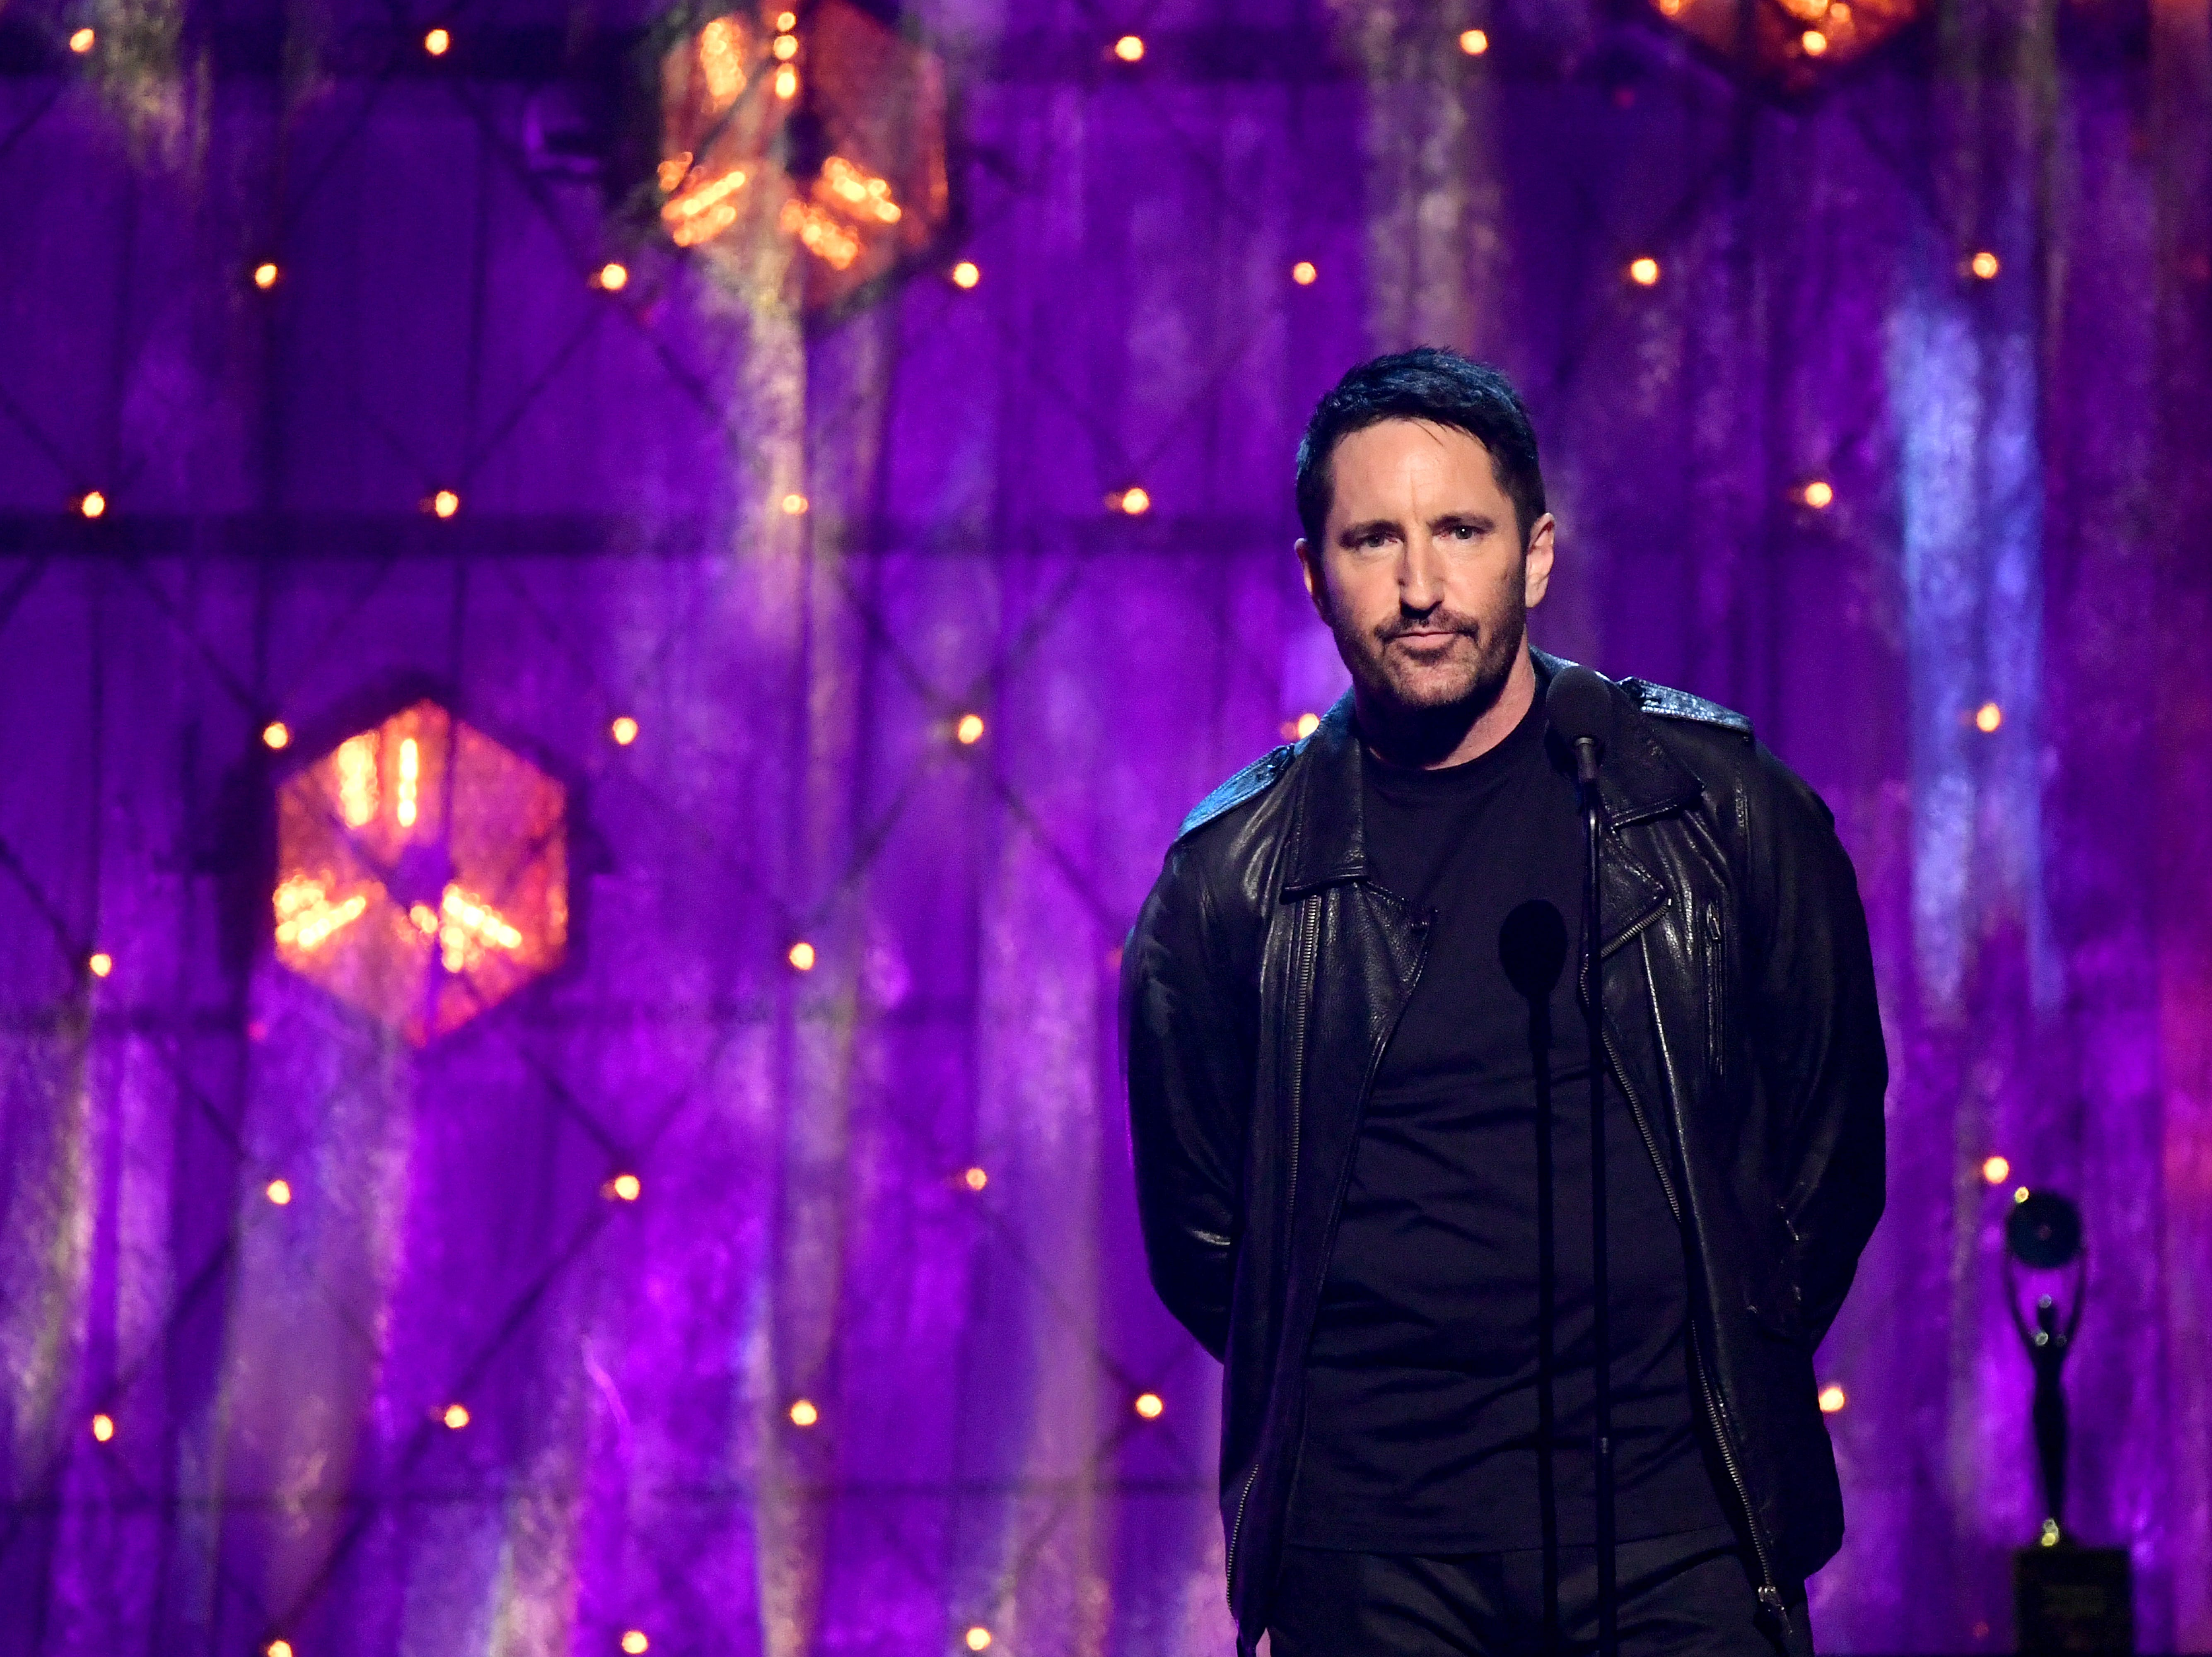 Nine Inch Nails frontman Trent Reznor introduces The Cure.